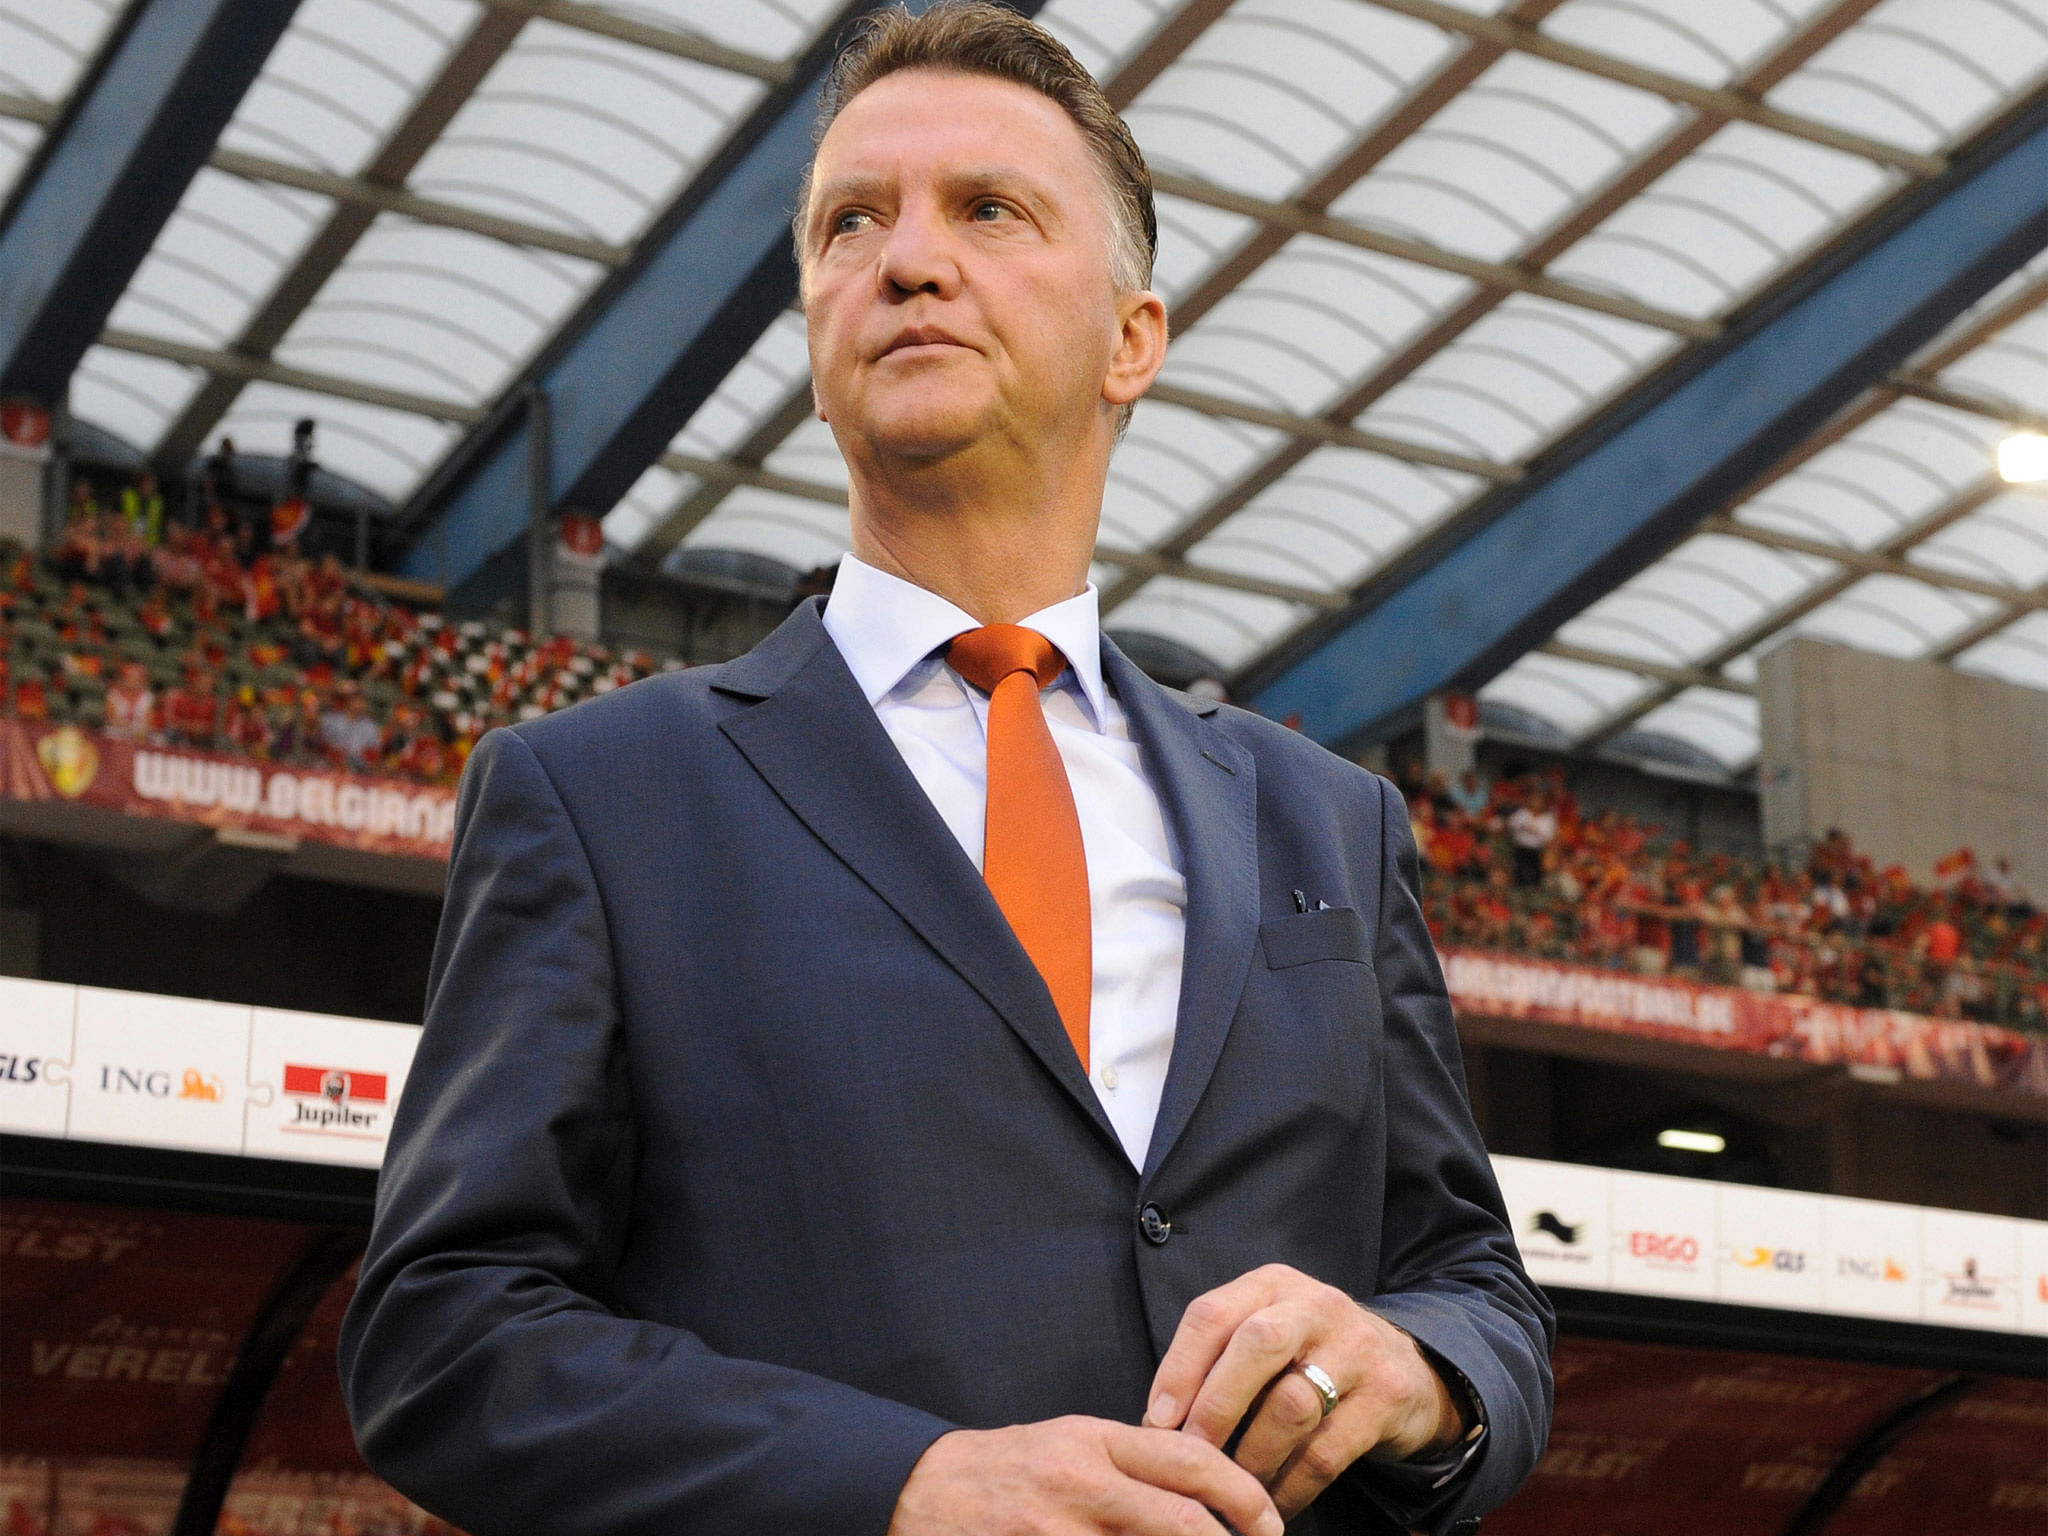 Four reasons why Manchester United fans should feel optimistic about 2014/15 season